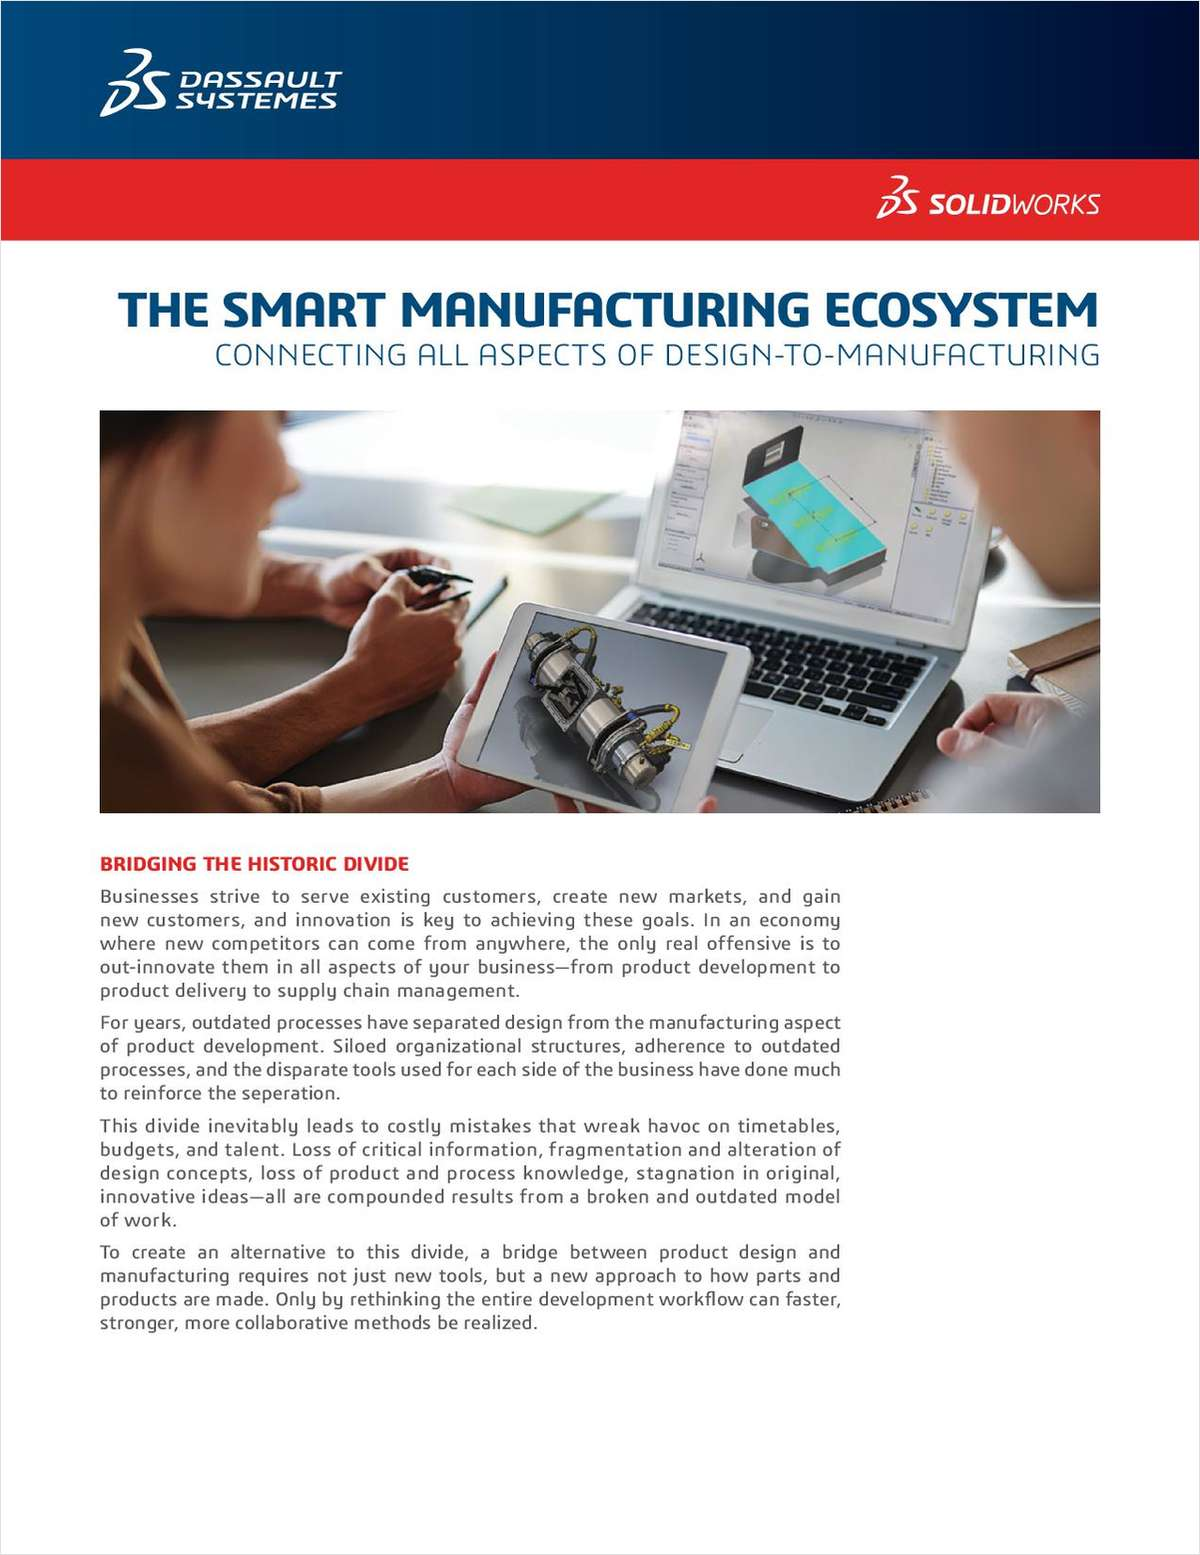 The Impact of Smart Manufacturing on the Global Ecosystem